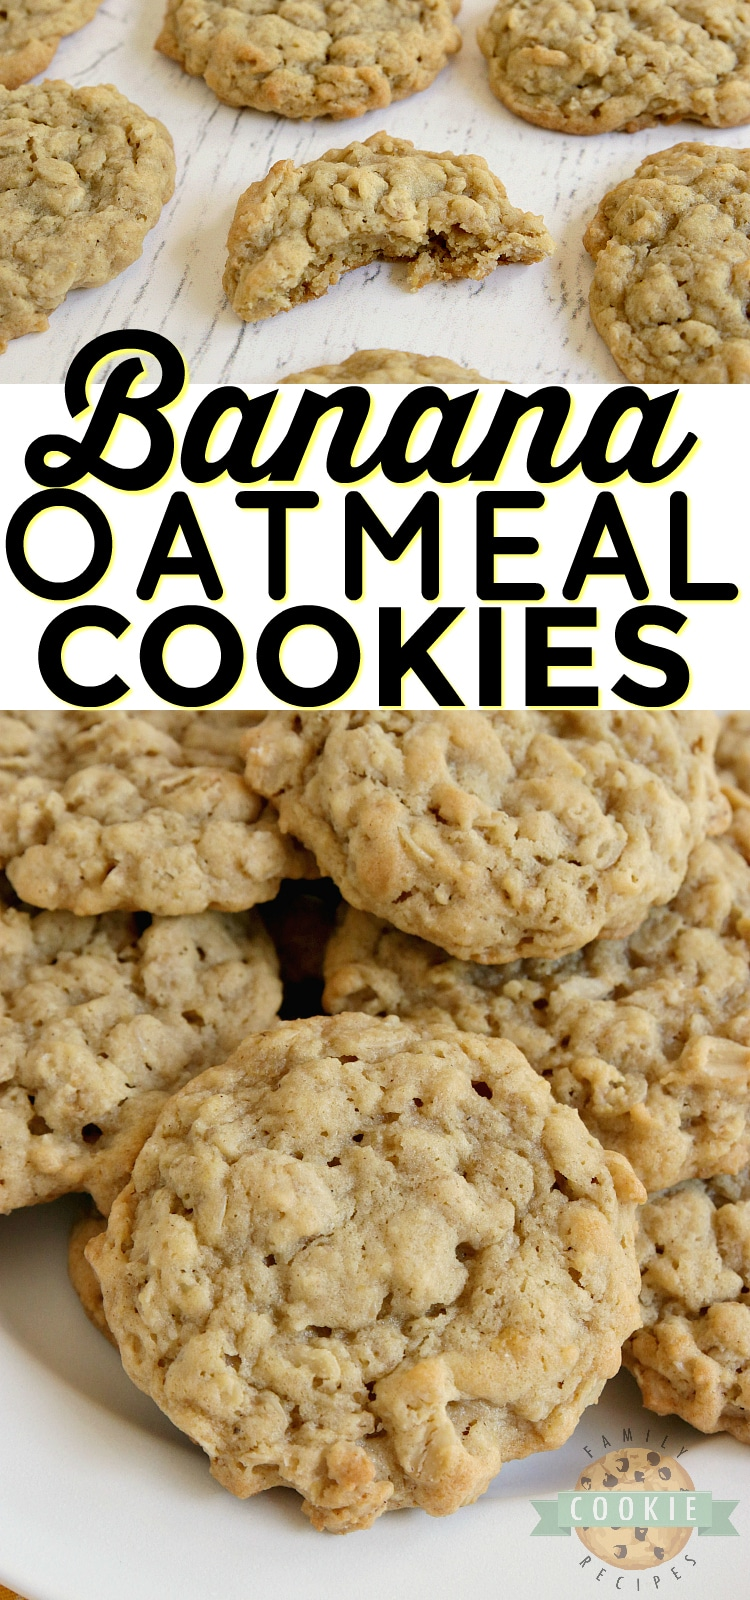 Banana Oatmeal Cookies are soft, chewy and made with banana pudding mix and fresh bananas! Easy oatmeal cookie recipe with a ton of banana flavor! via @familycookierecipes